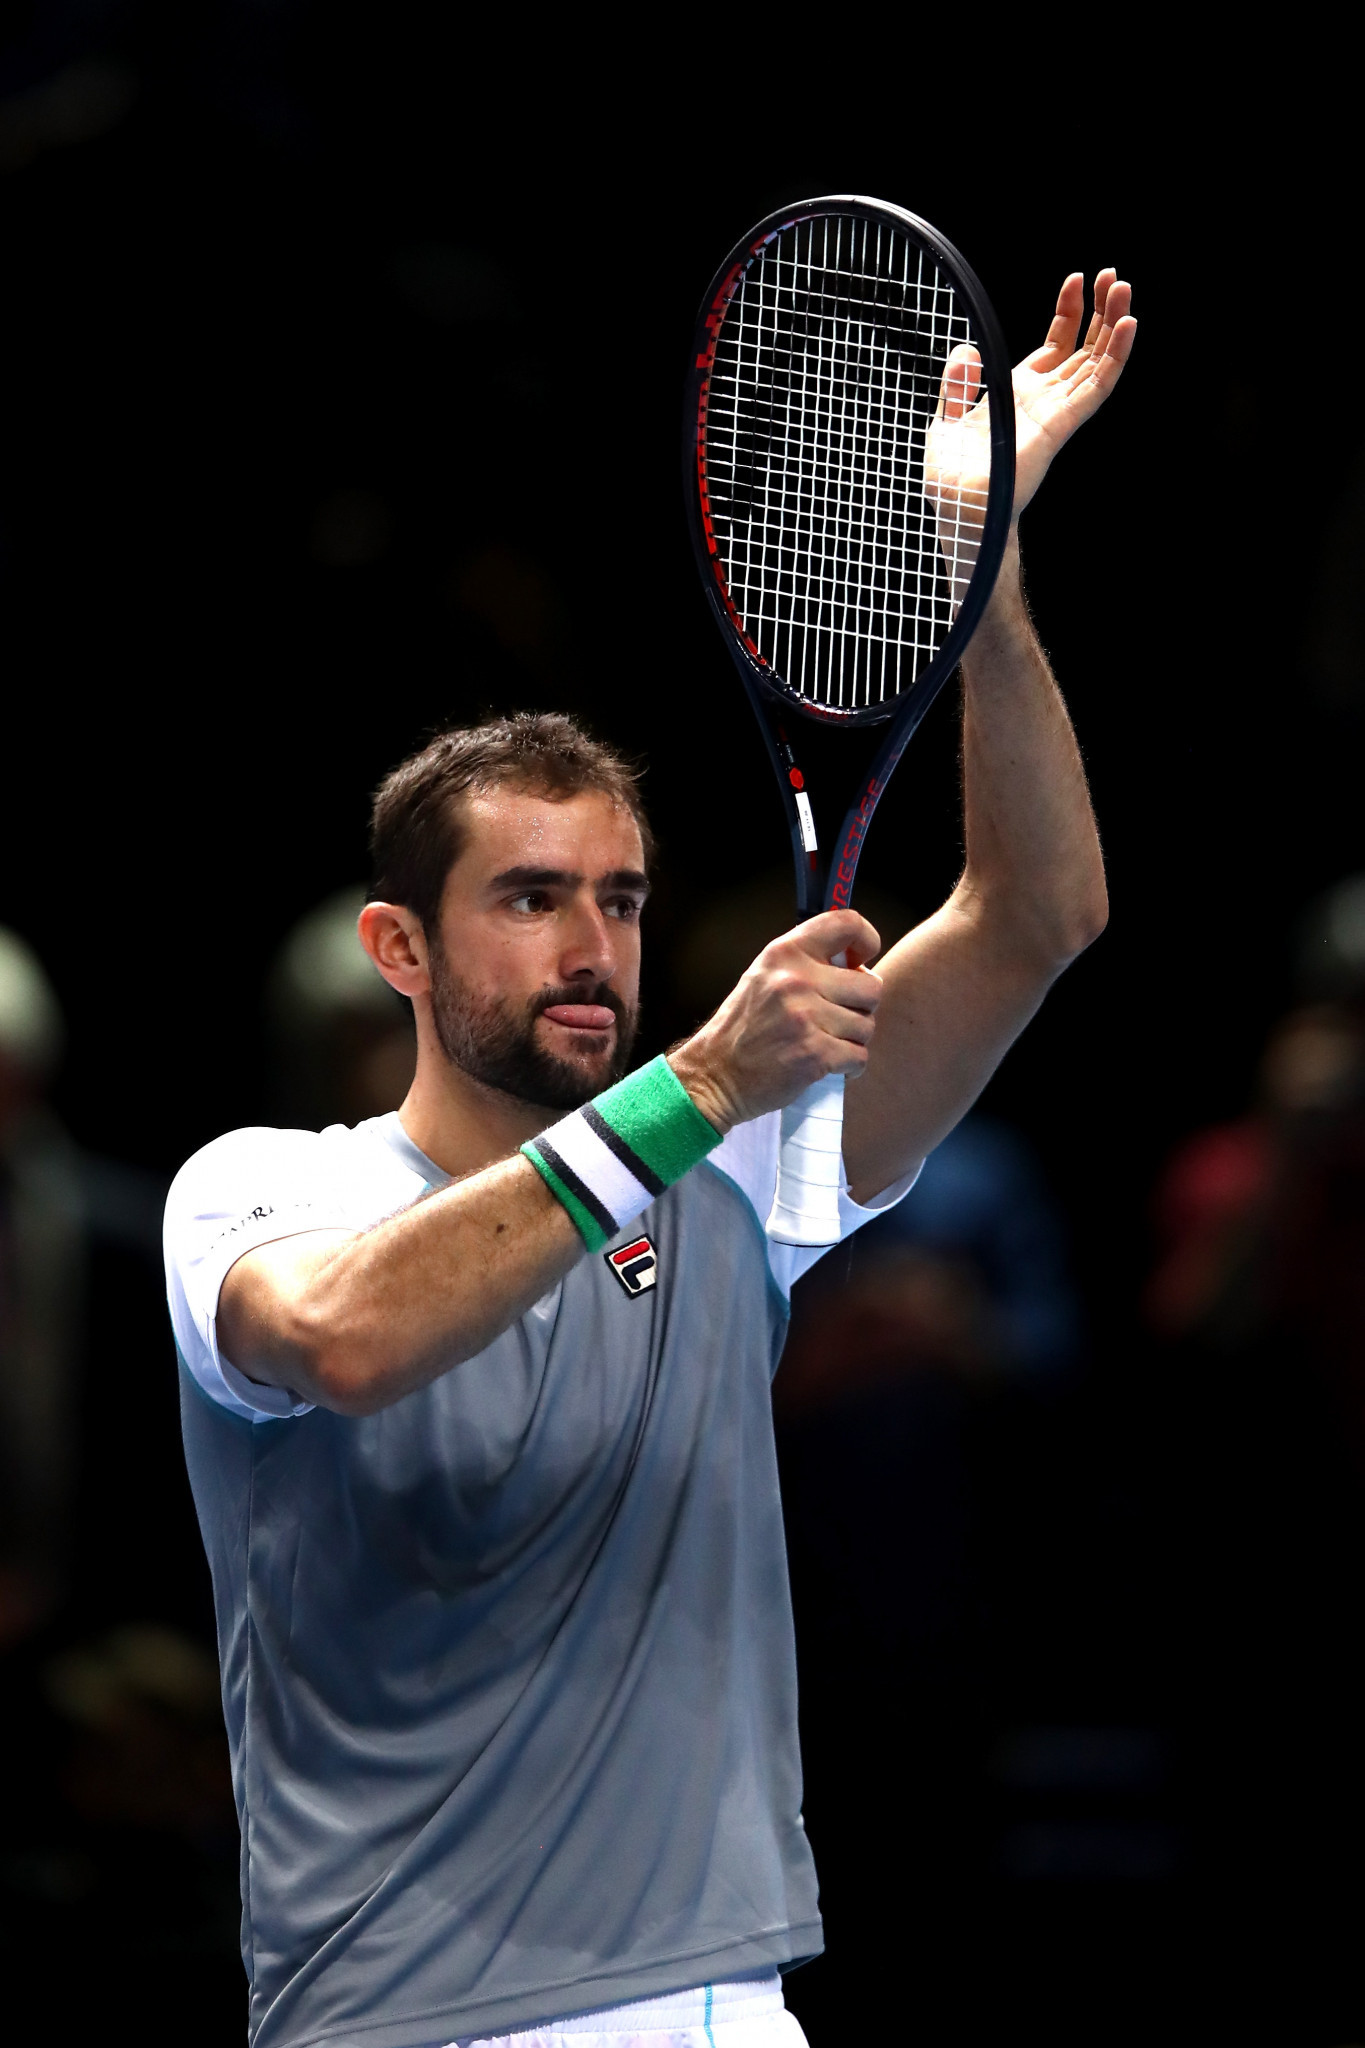 Cilic victory over Isner puts Djokovic through to semi-finals at ATP Finals in London